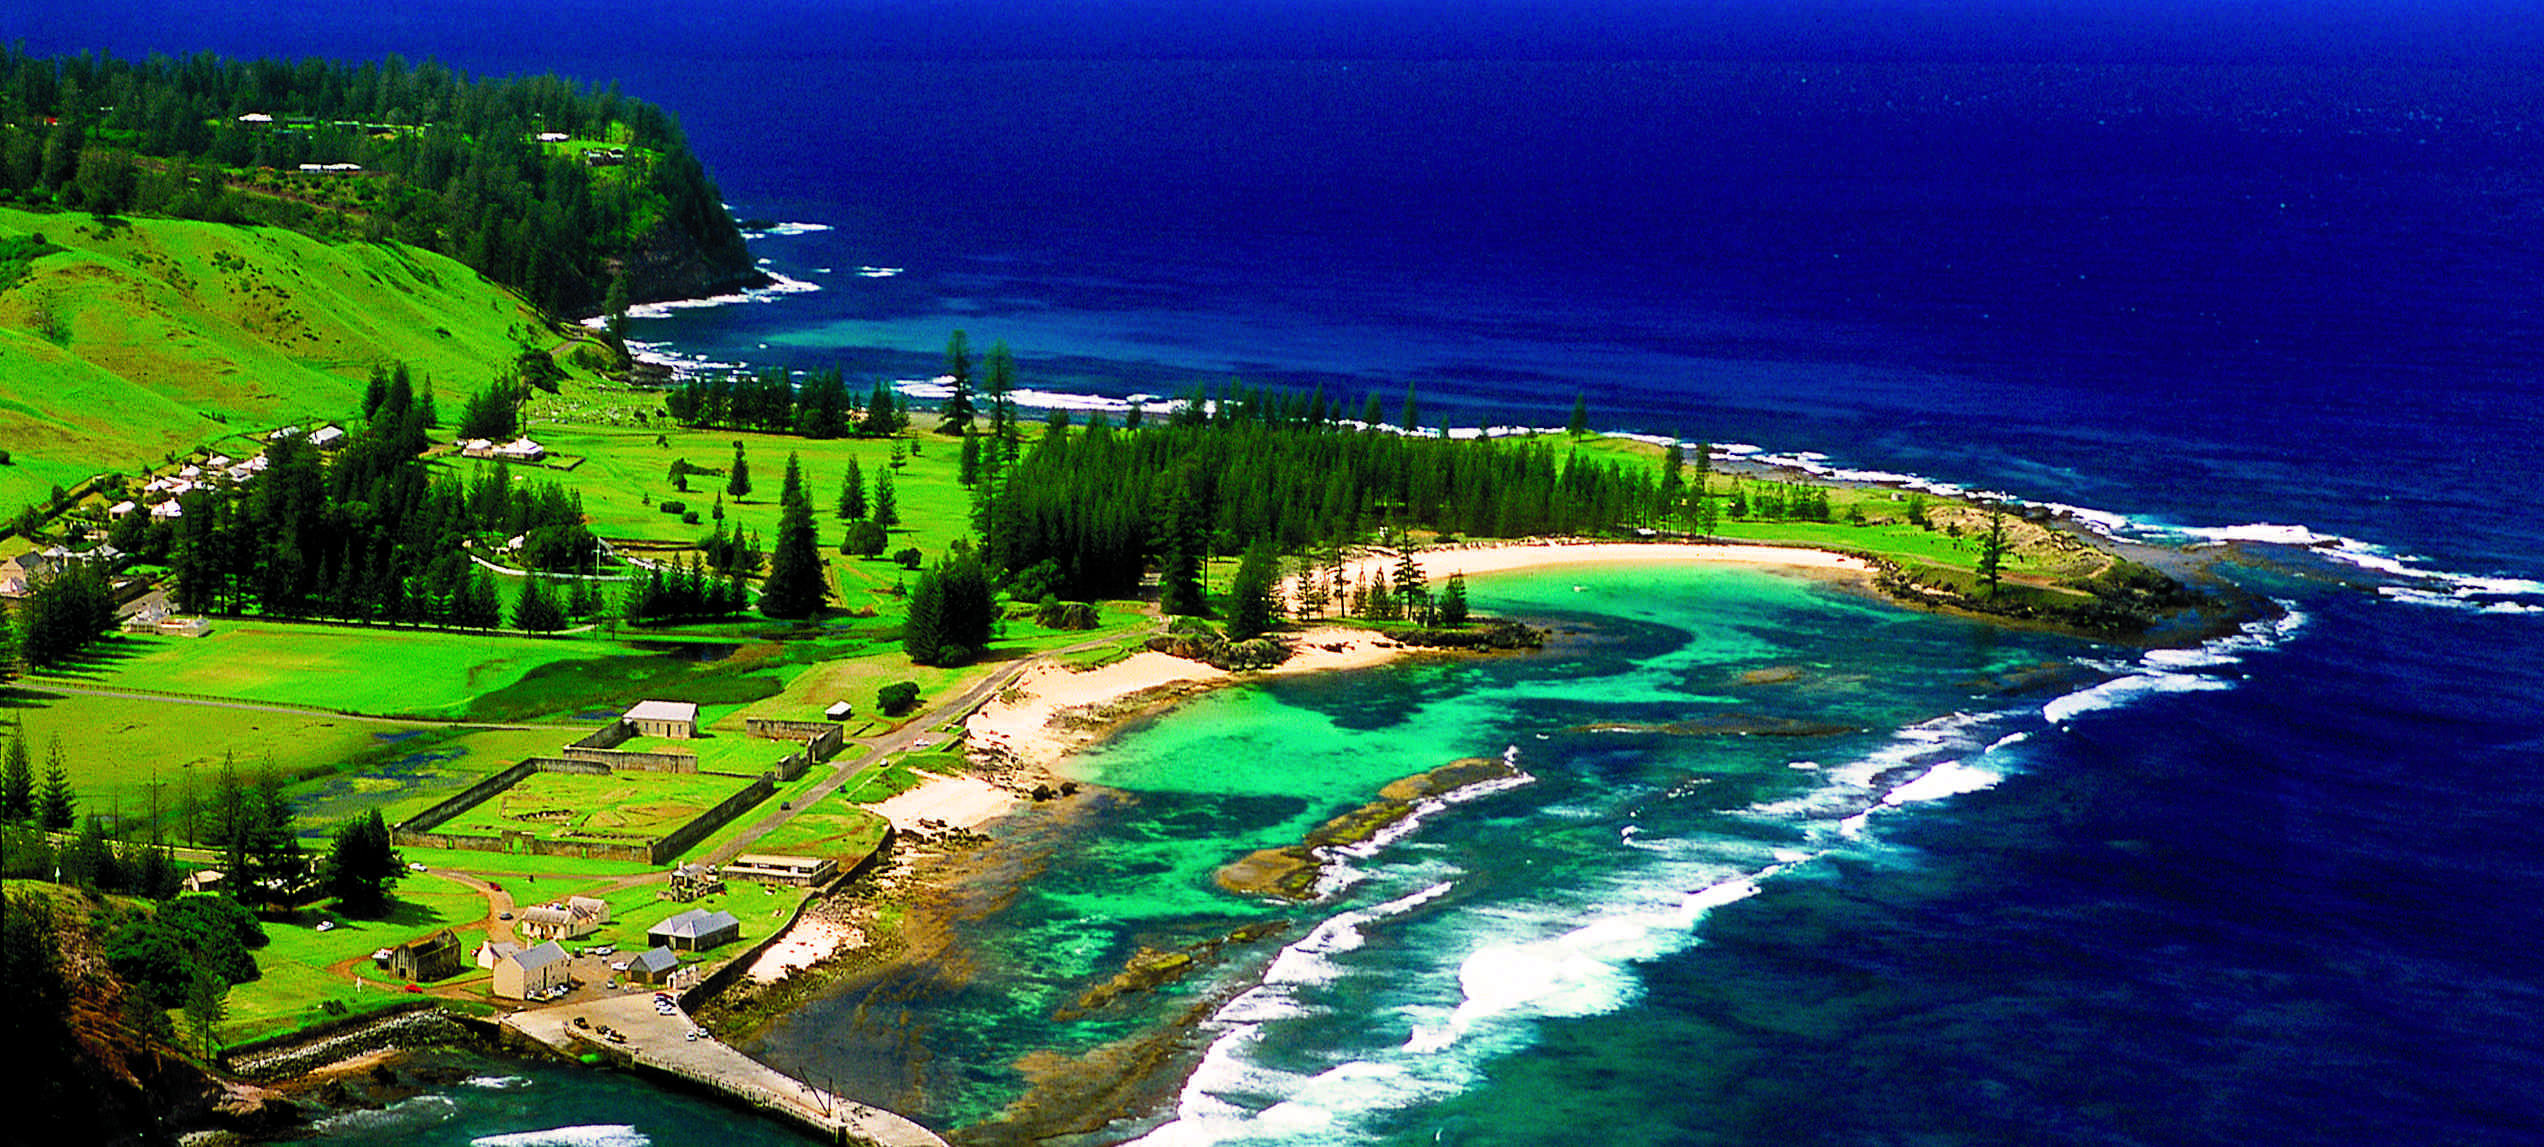 There S So Much More To Discover On Norfolk Island